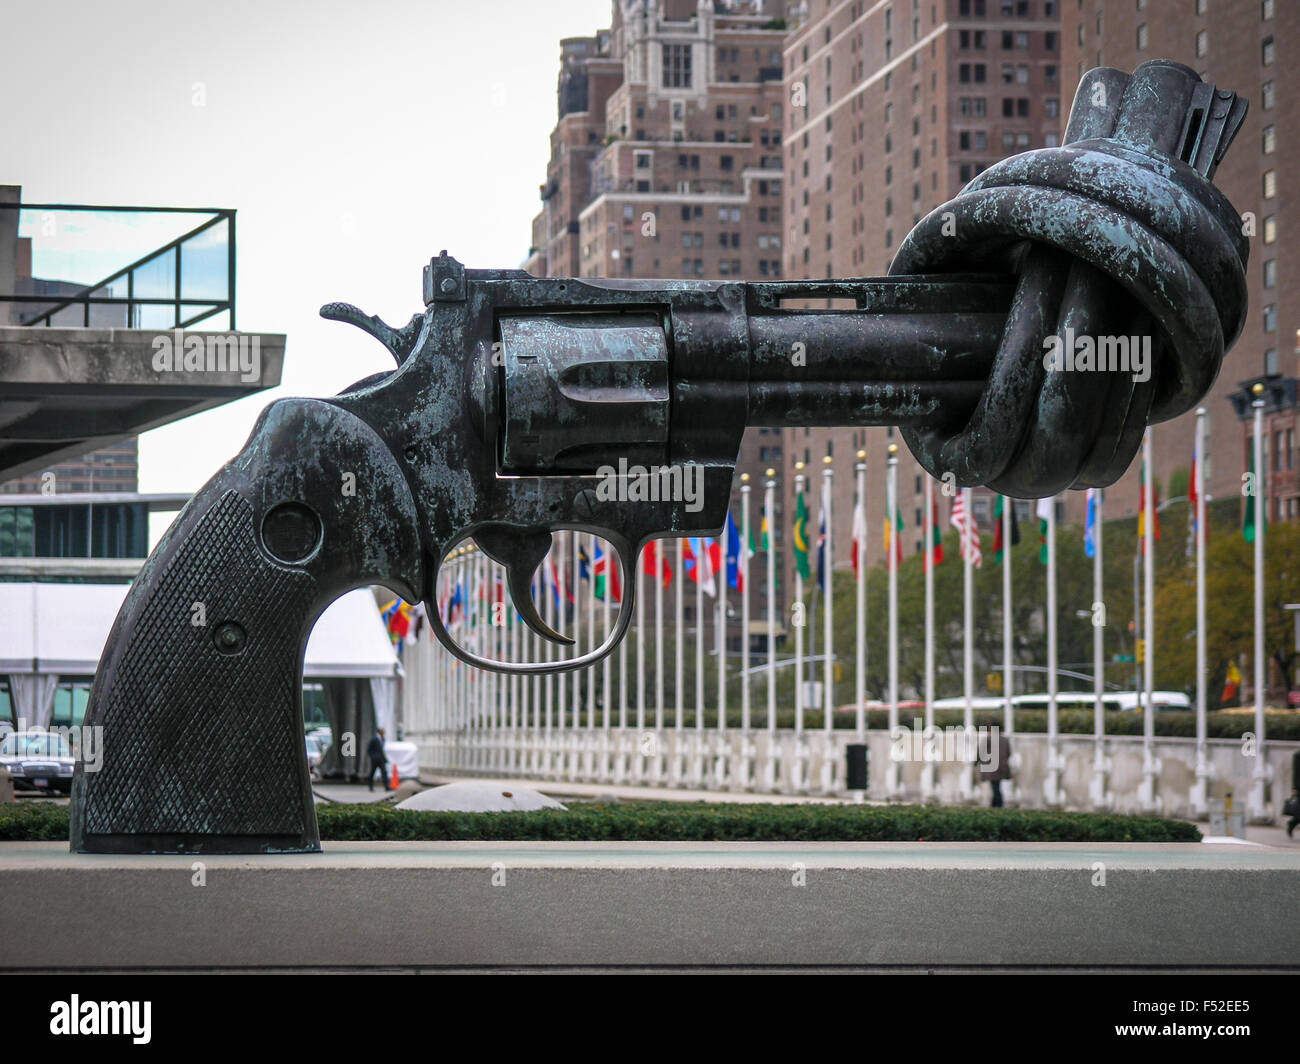 Knotted Gun sculpture in front of the United Nations Building, New York, USA Stock Photo